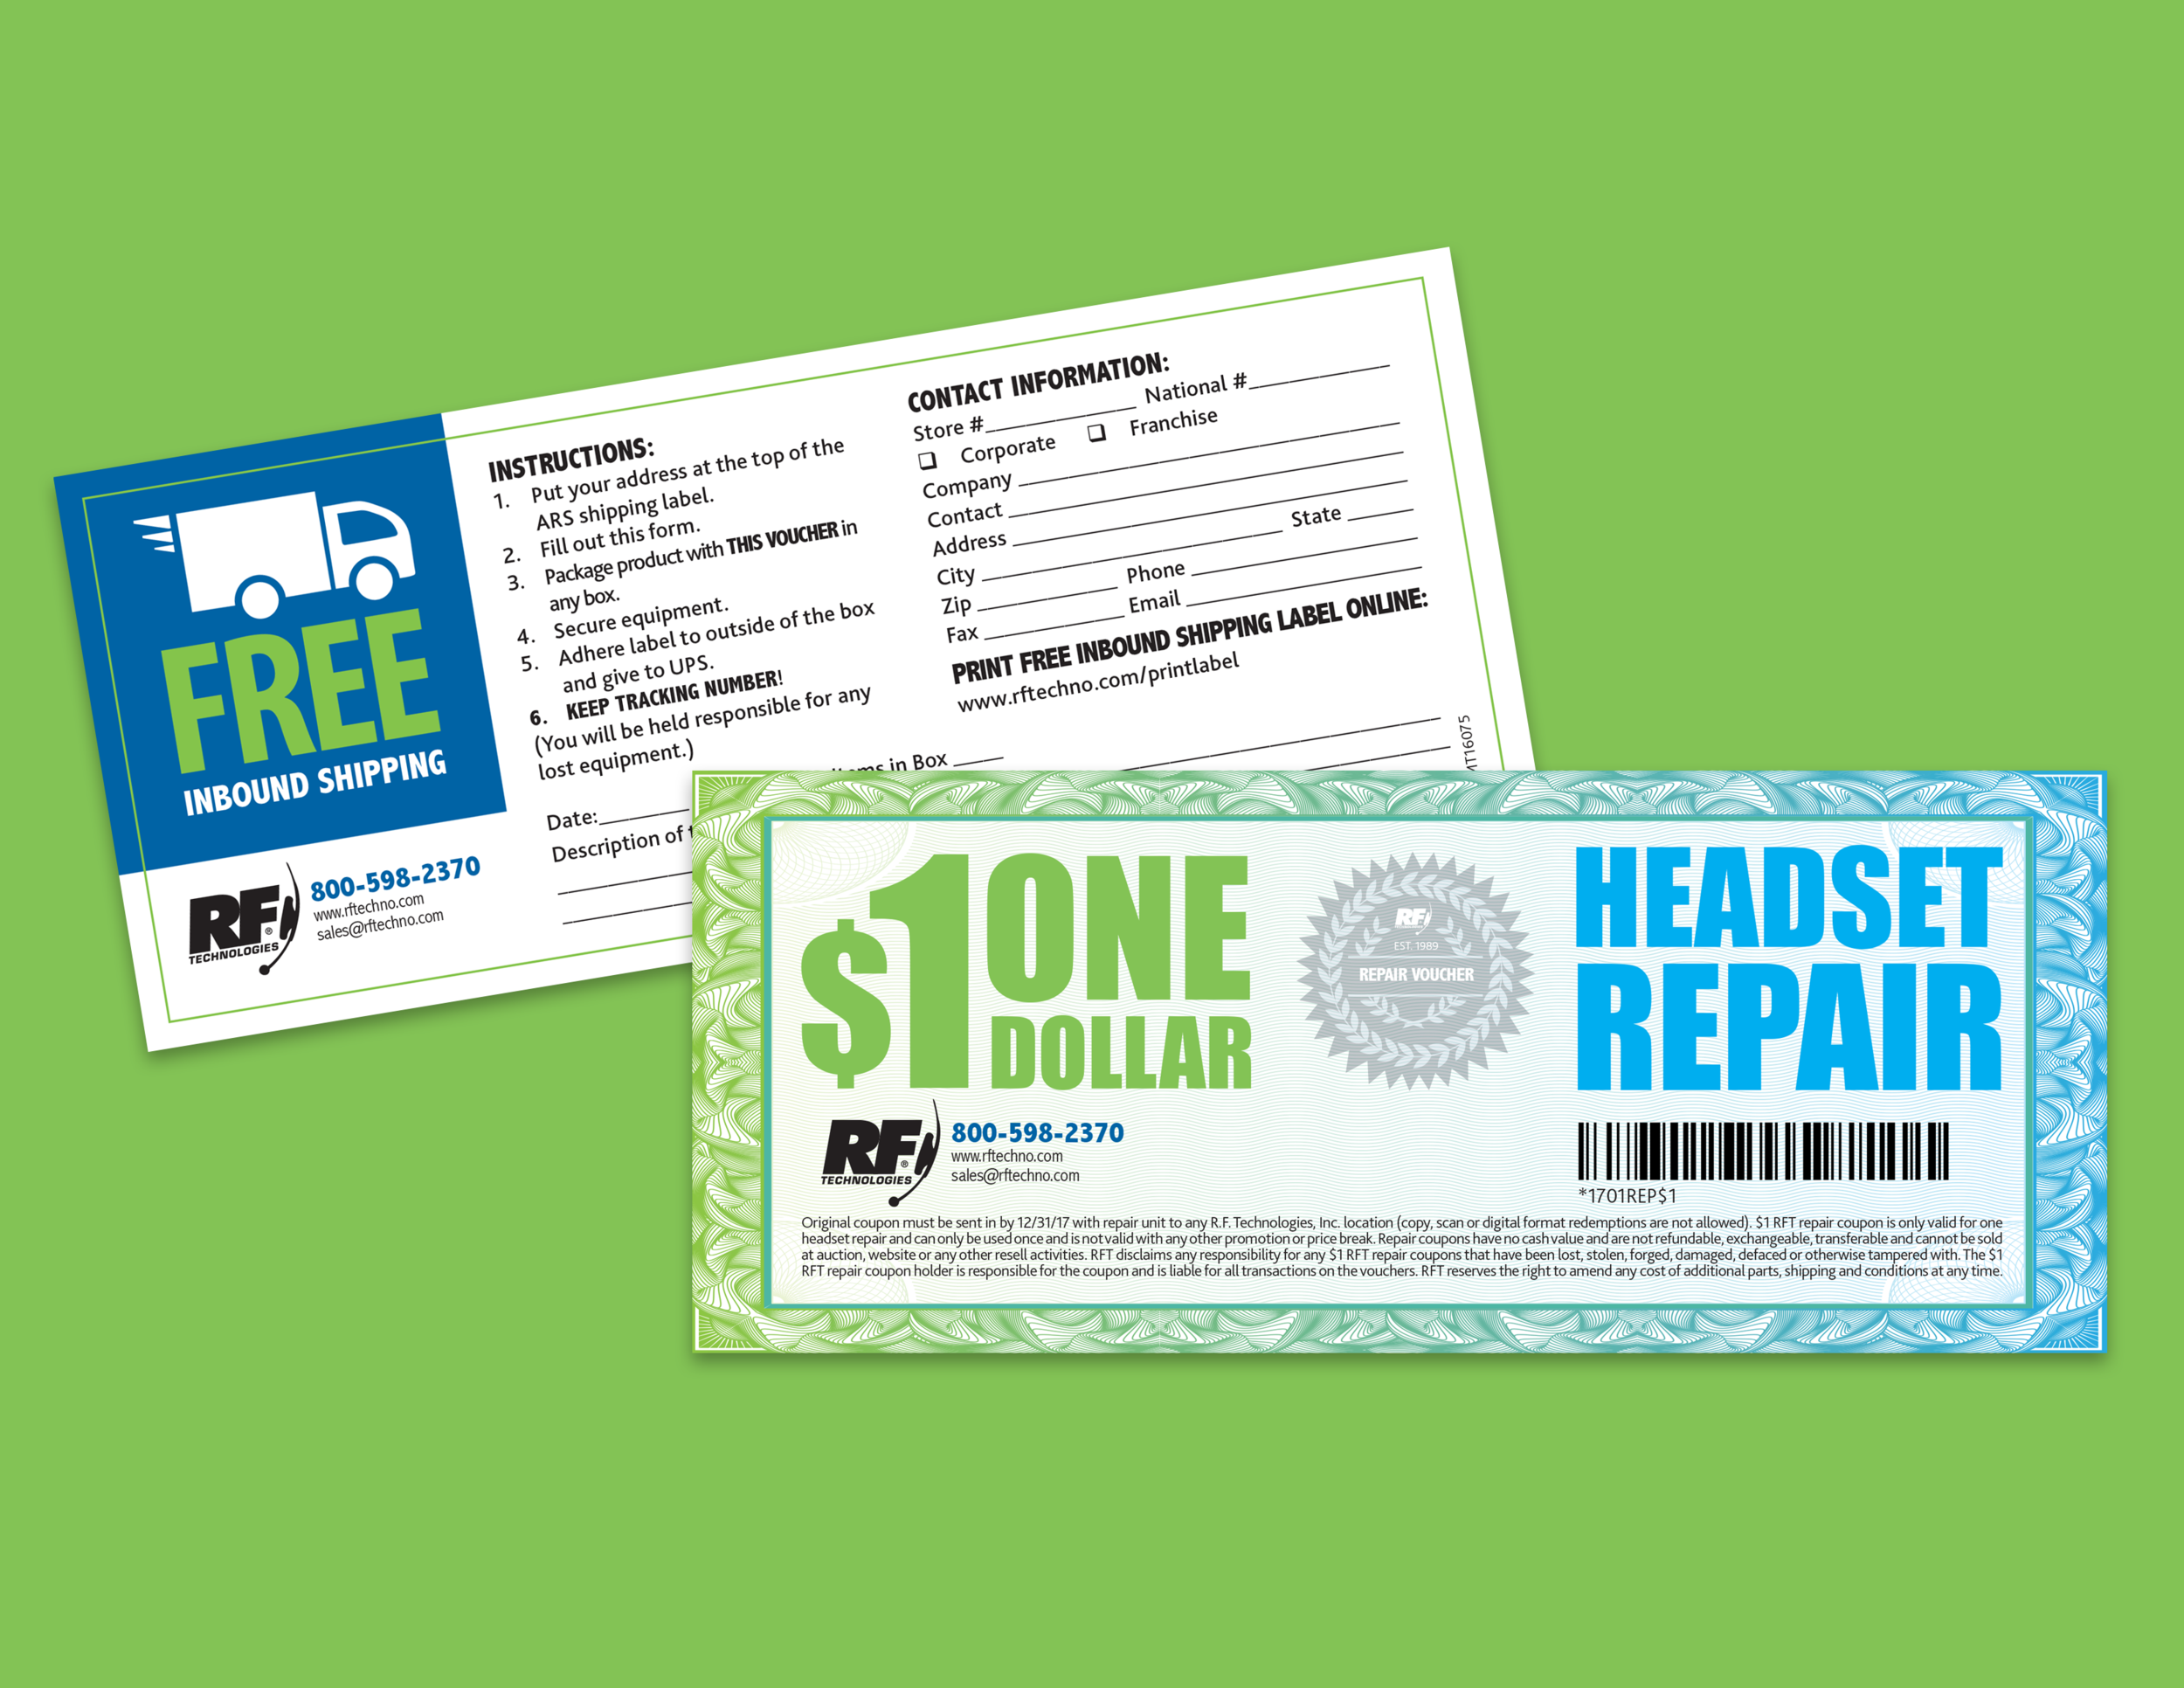 dollar-repair_header.png